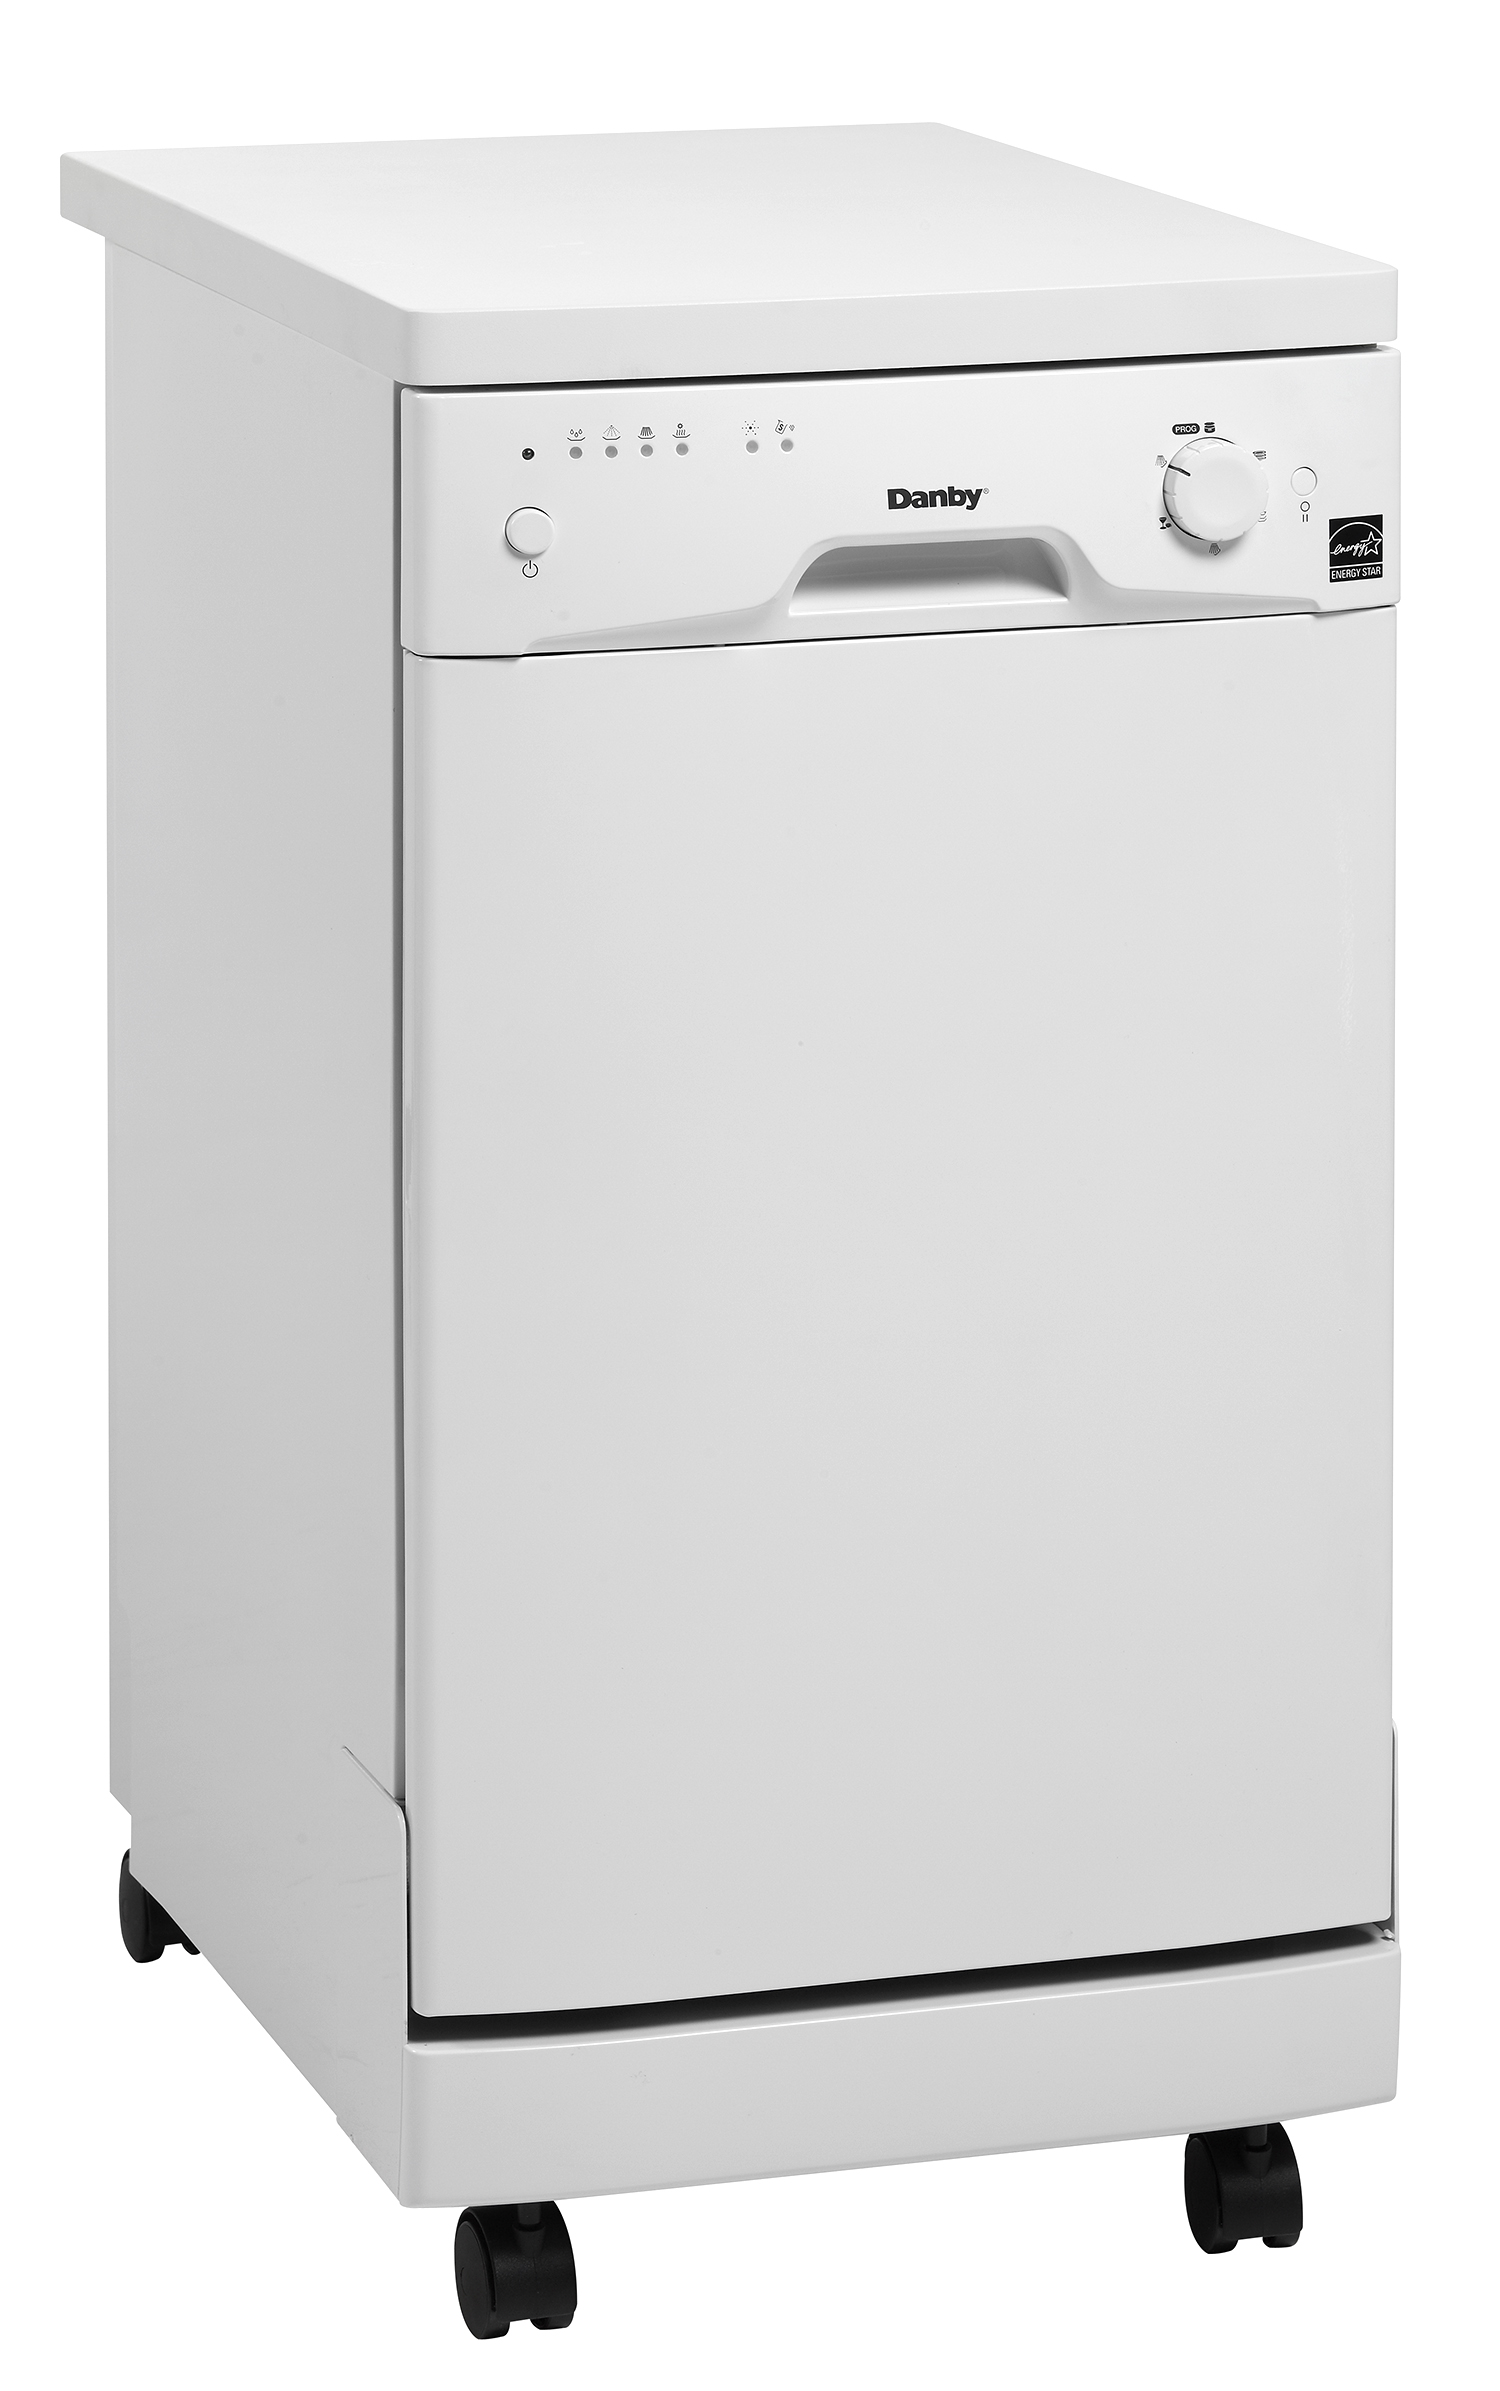 ddw1801mwp | danby 8 place setting dishwasher | en-us